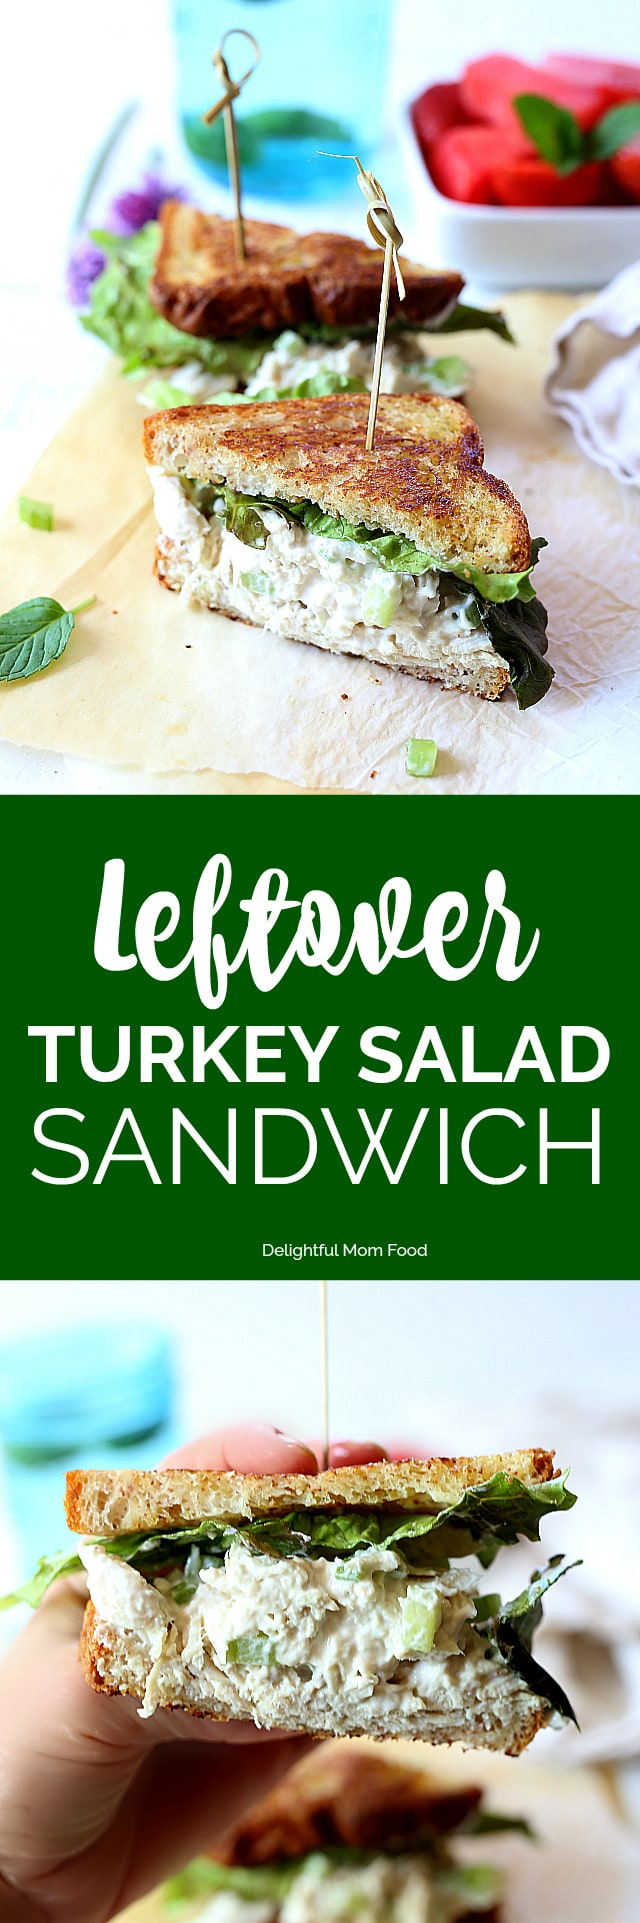 Healthyleftover turkey salad sandwich recipe to use up all that delicious turkey from Thanksgiving into lunches for the week!